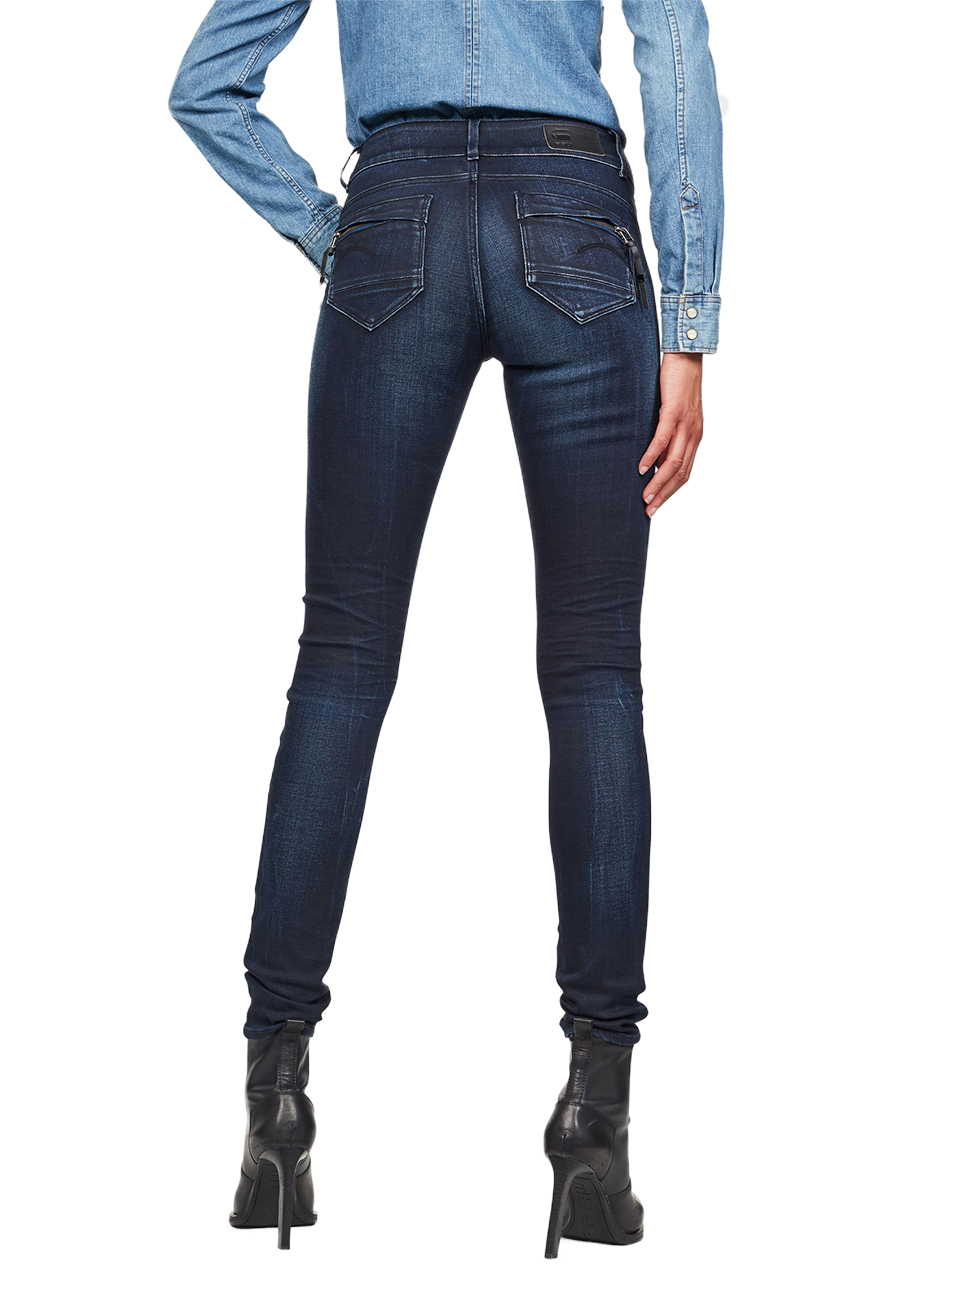 g-star-damen-jeans-midge-cody-mid-skinny-fit-blau-faded-blue